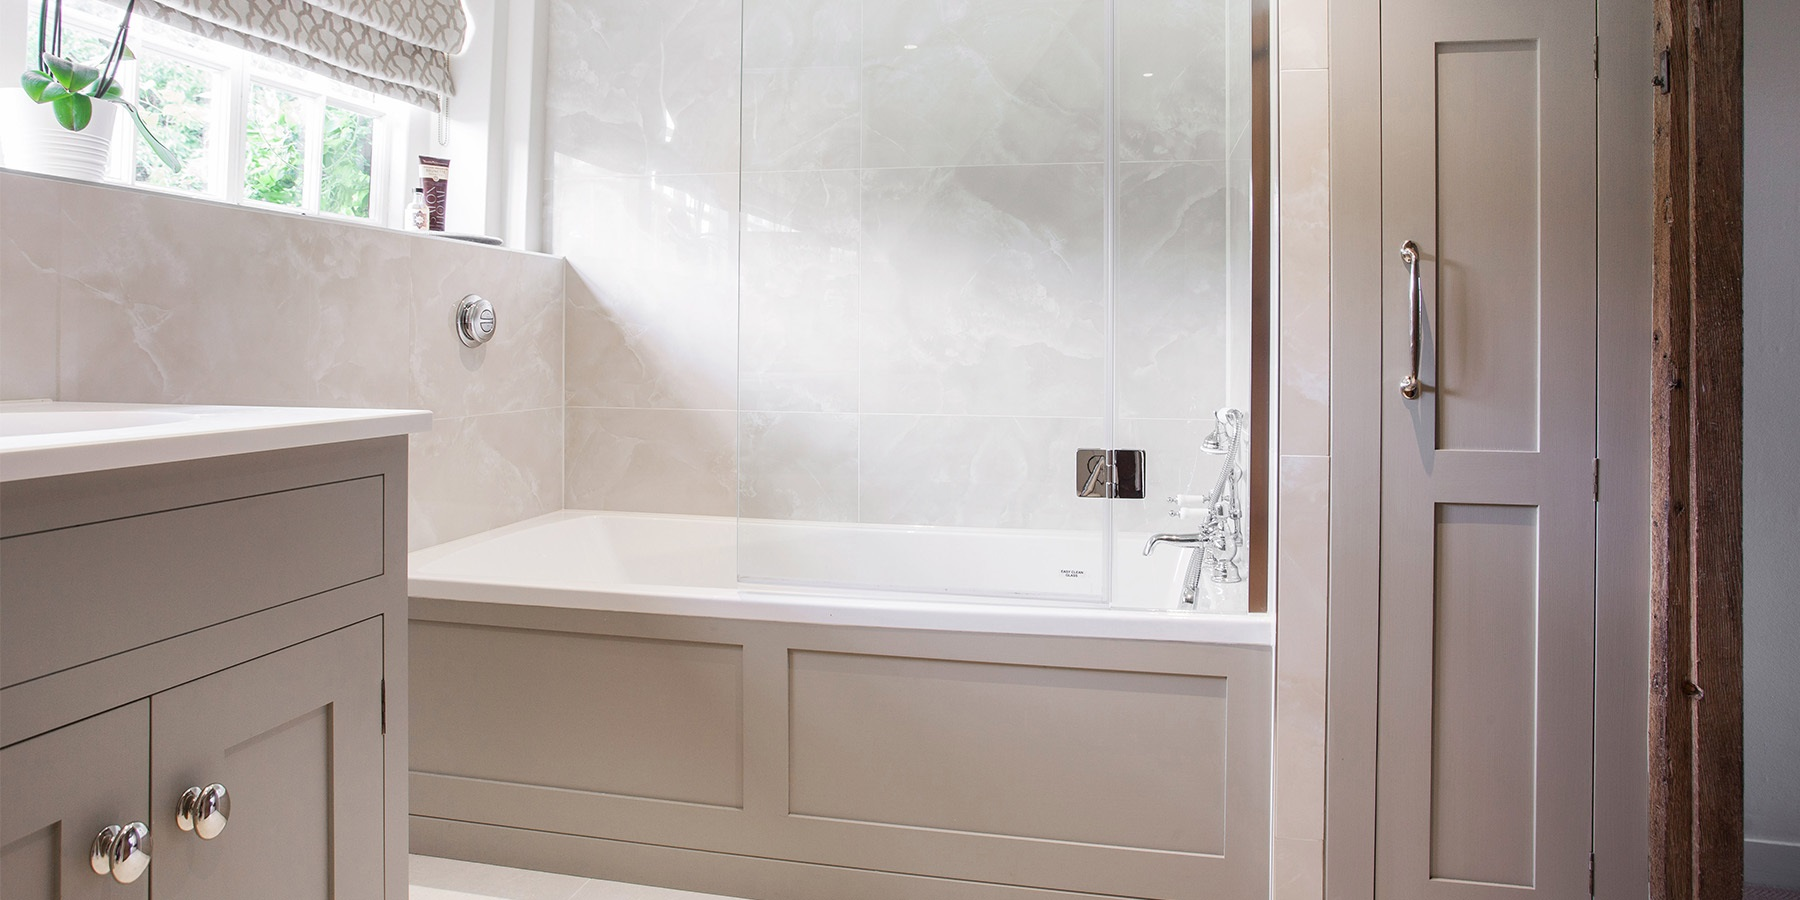 Luxury Bespoke Family Bathroom - Burlanes handmade bathroom furniture with boxed in bath and storage solutions.